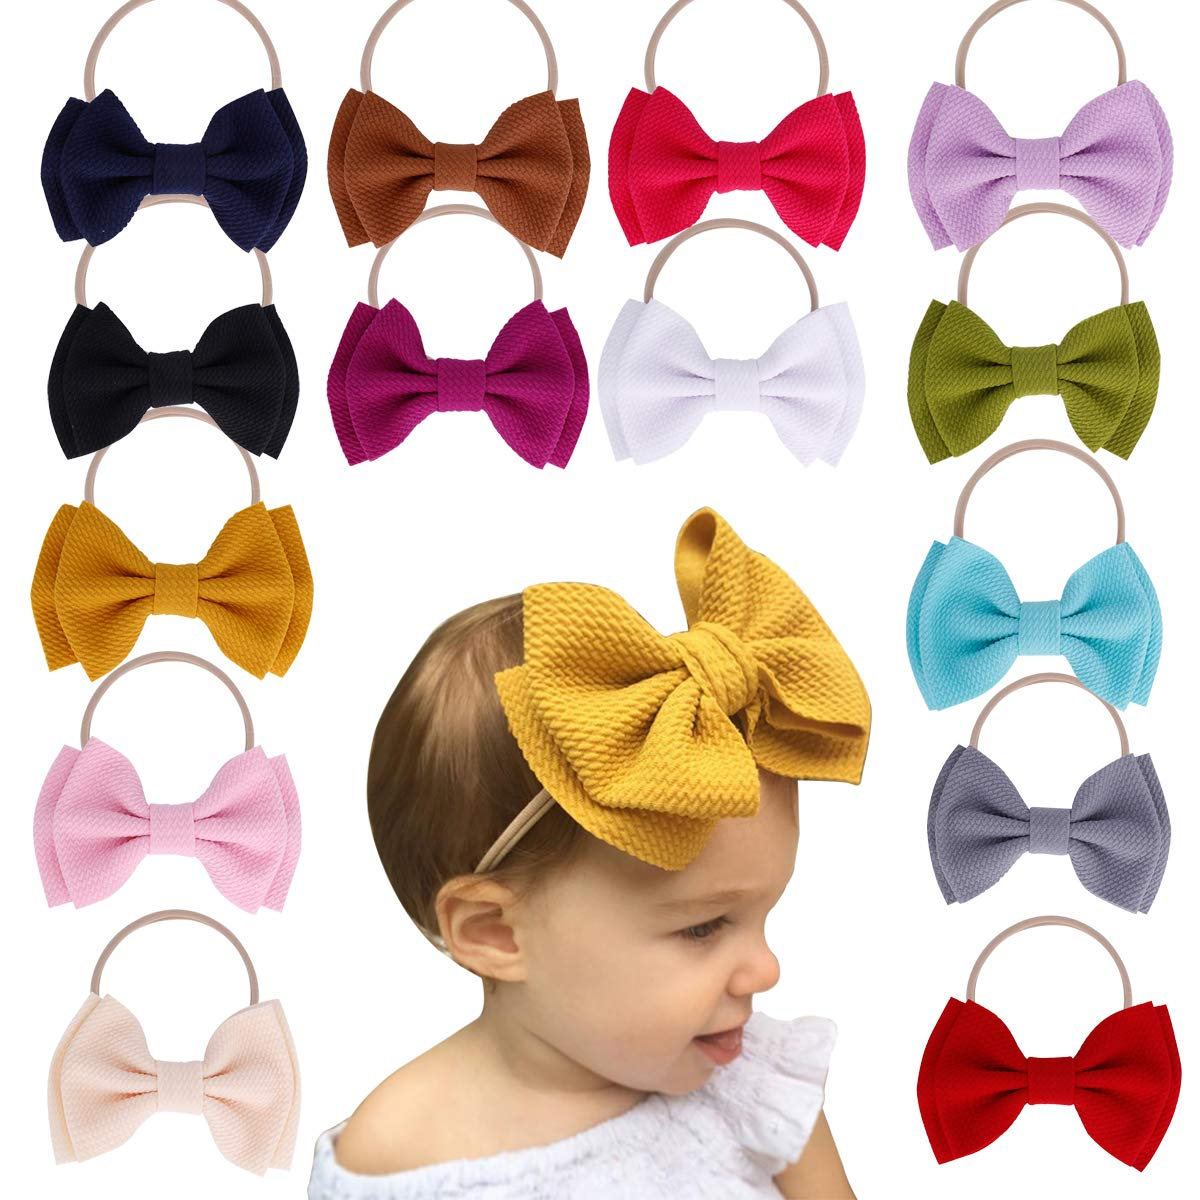 Baby Girl Nylon Headbands Newborn Infant Toddler Hairbands and Bows Child Hair Accessories (ZM15-14pcs) by Mookiraer